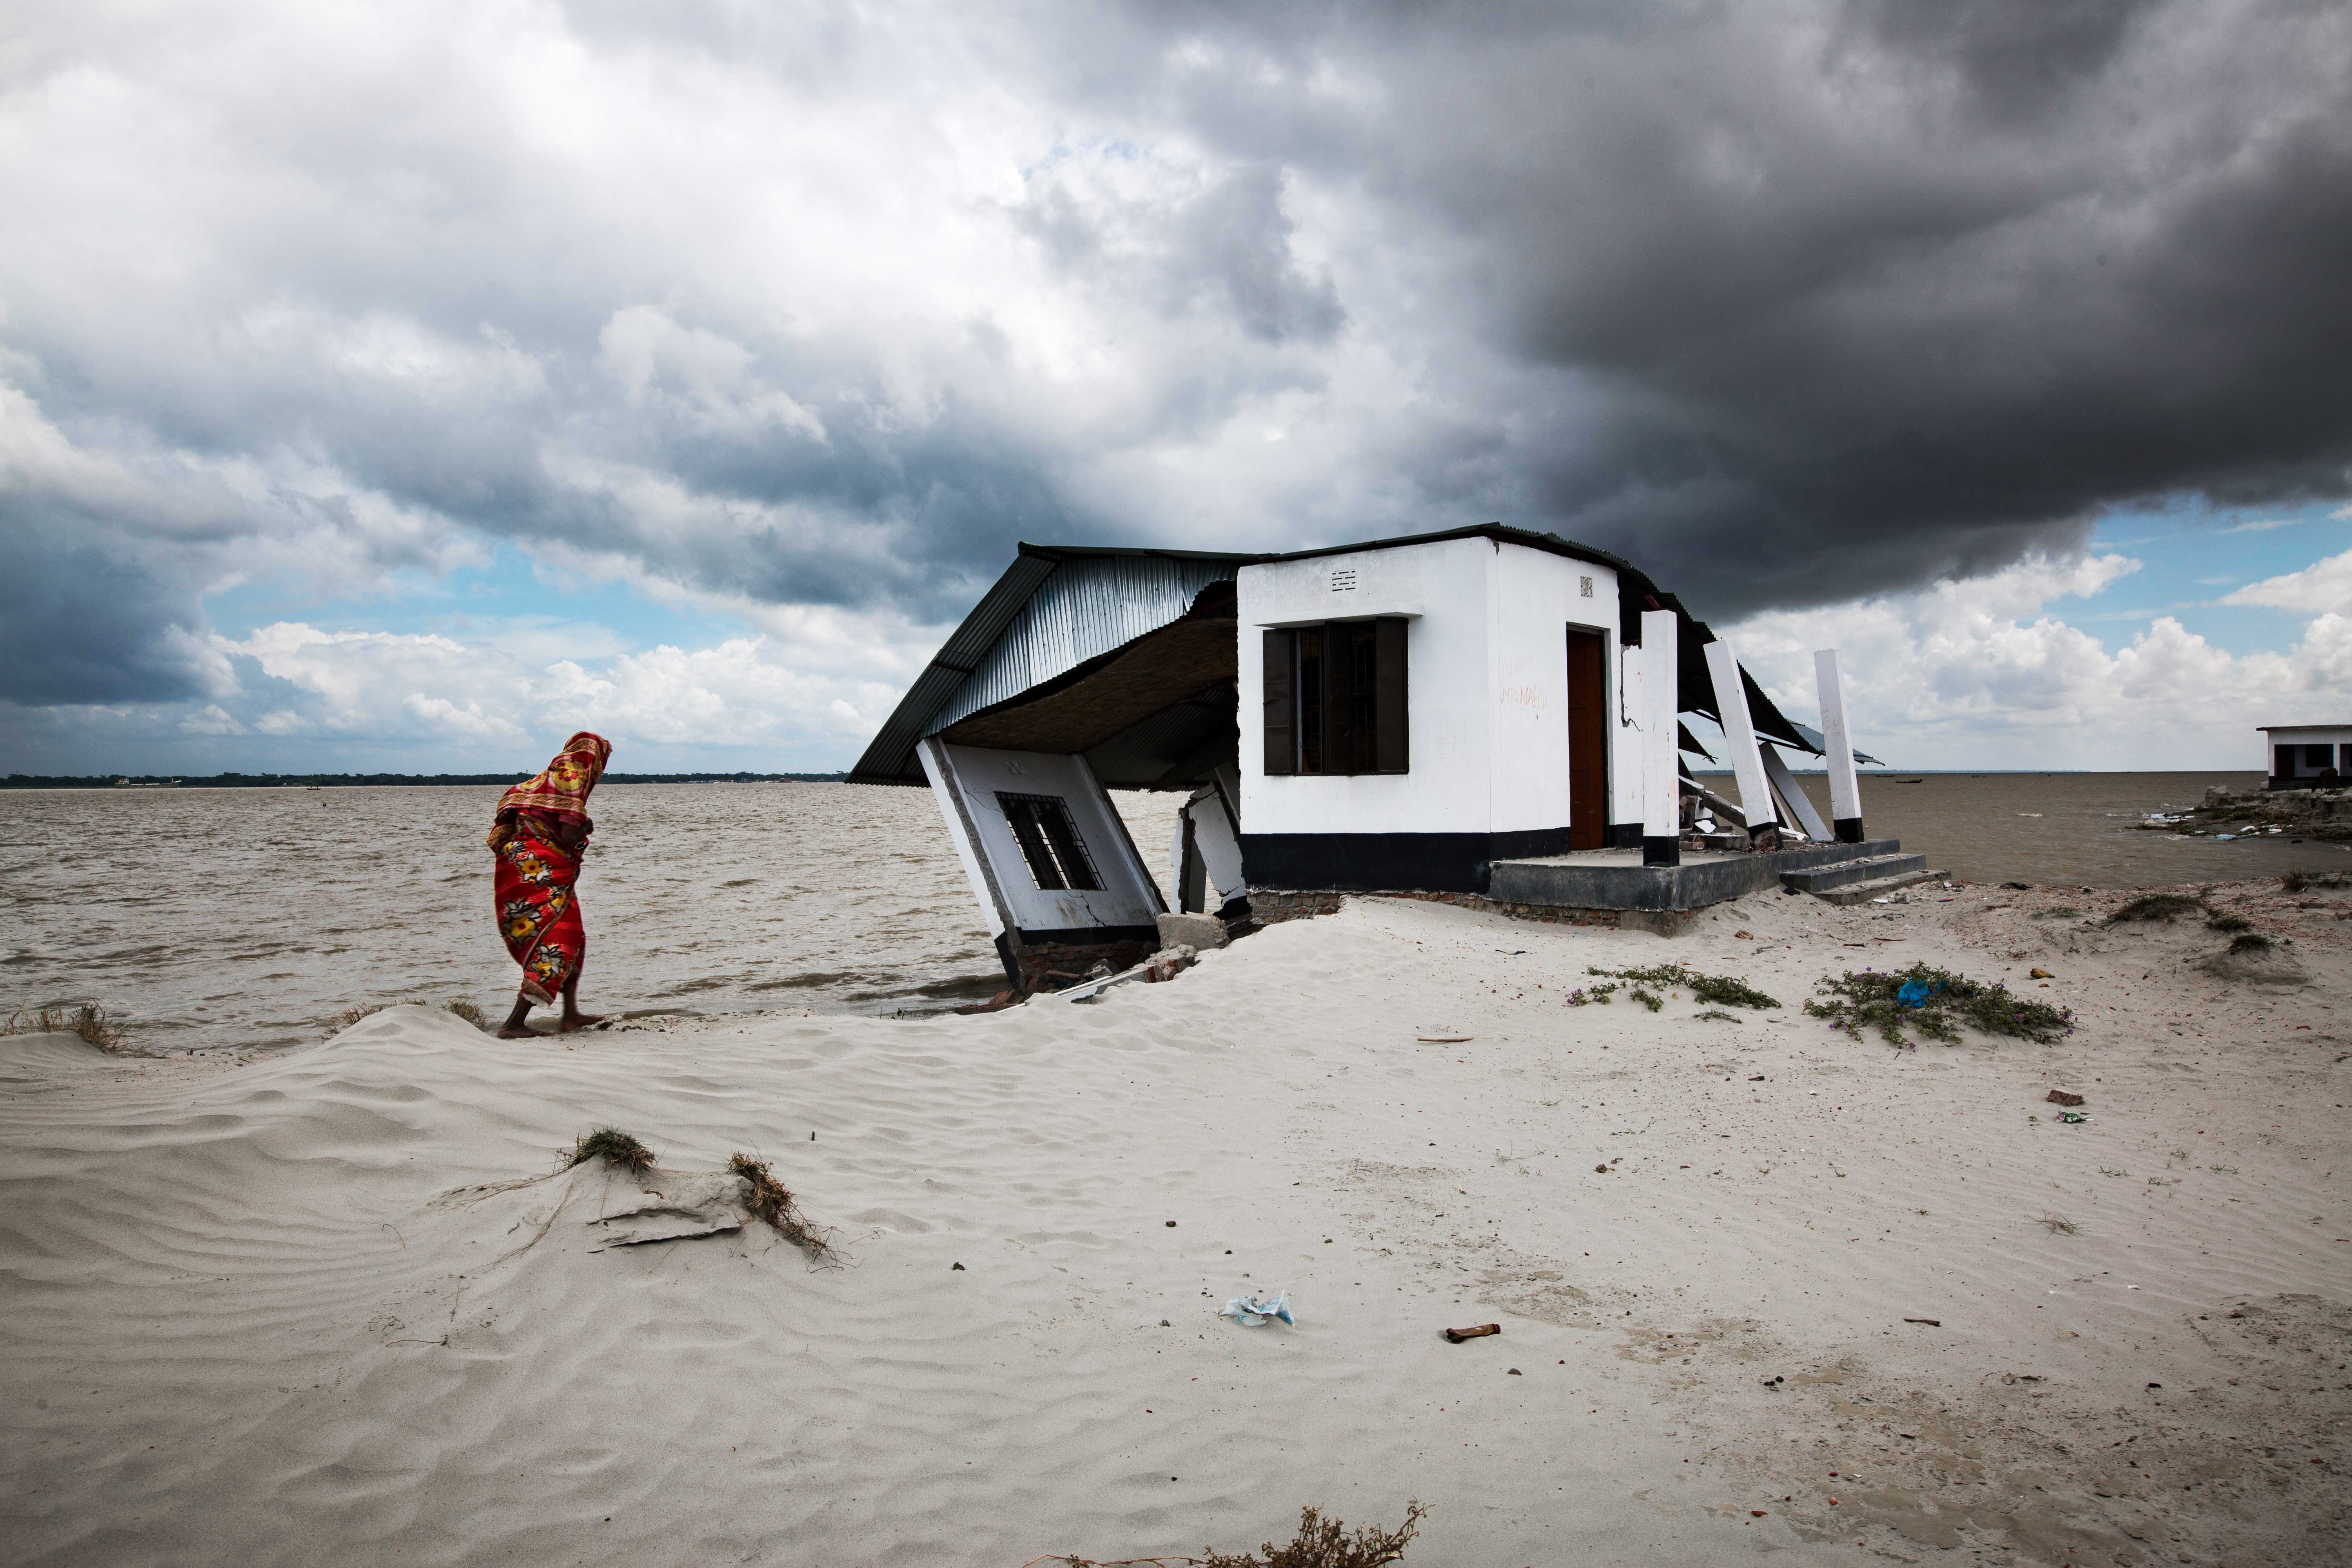 A woman walks to her eroded shelter home near the Meghna river in Bangladesh.